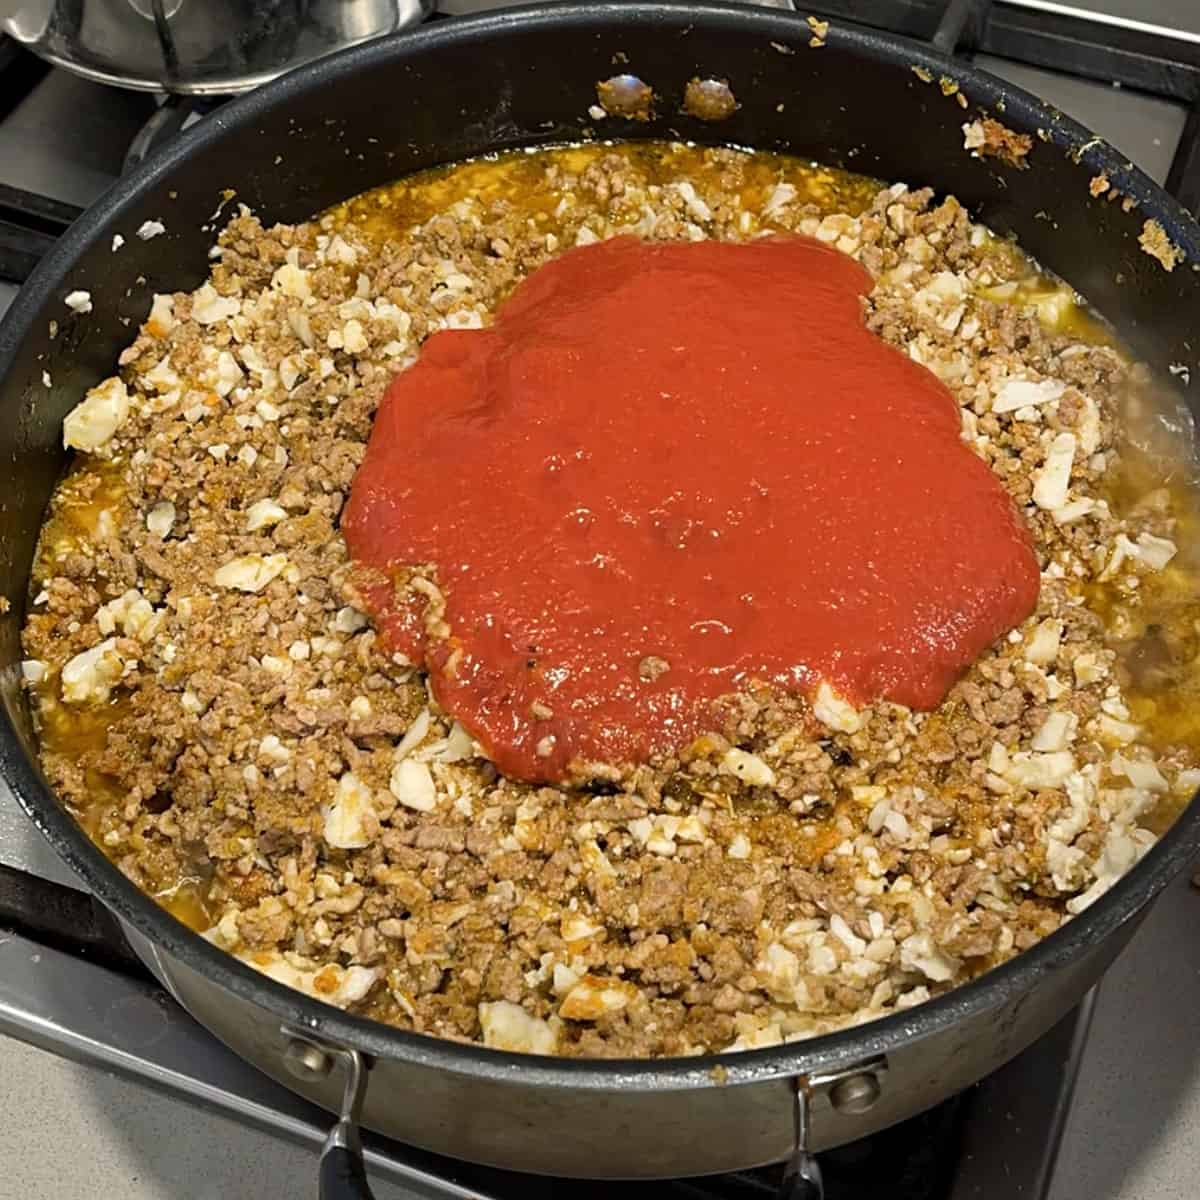 Mince and crushed tomatoes in a frying pan.